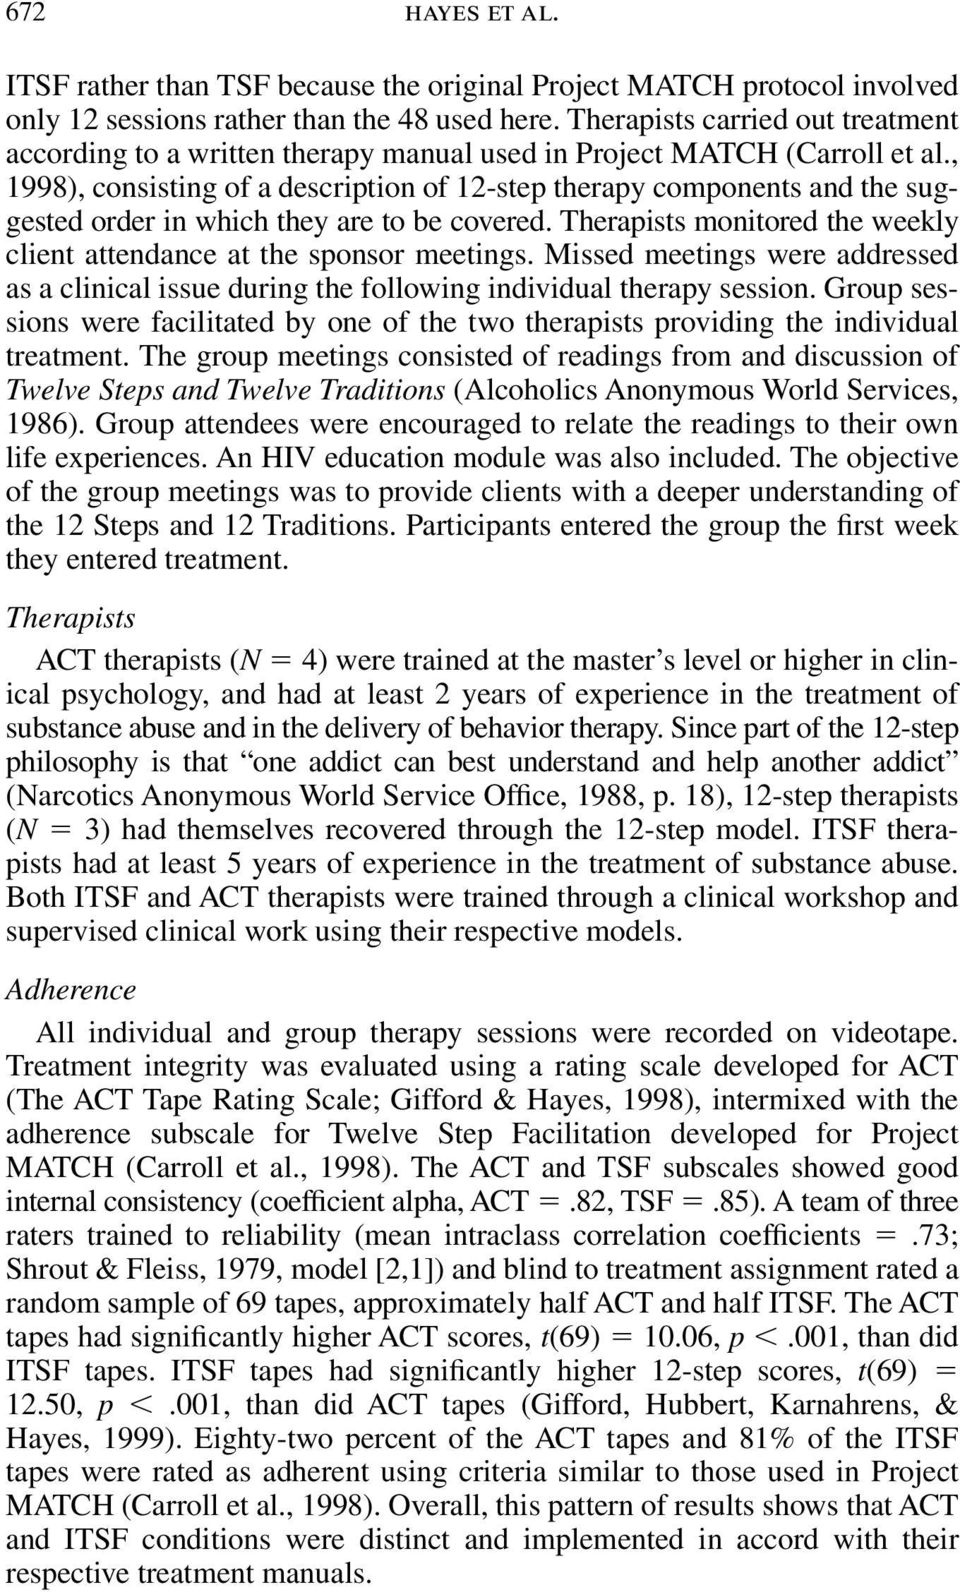 , 1998), consisting of a description of 12-step therapy components and the suggested order in which they are to be covered. Therapists monitored the weekly client attendance at the sponsor meetings.